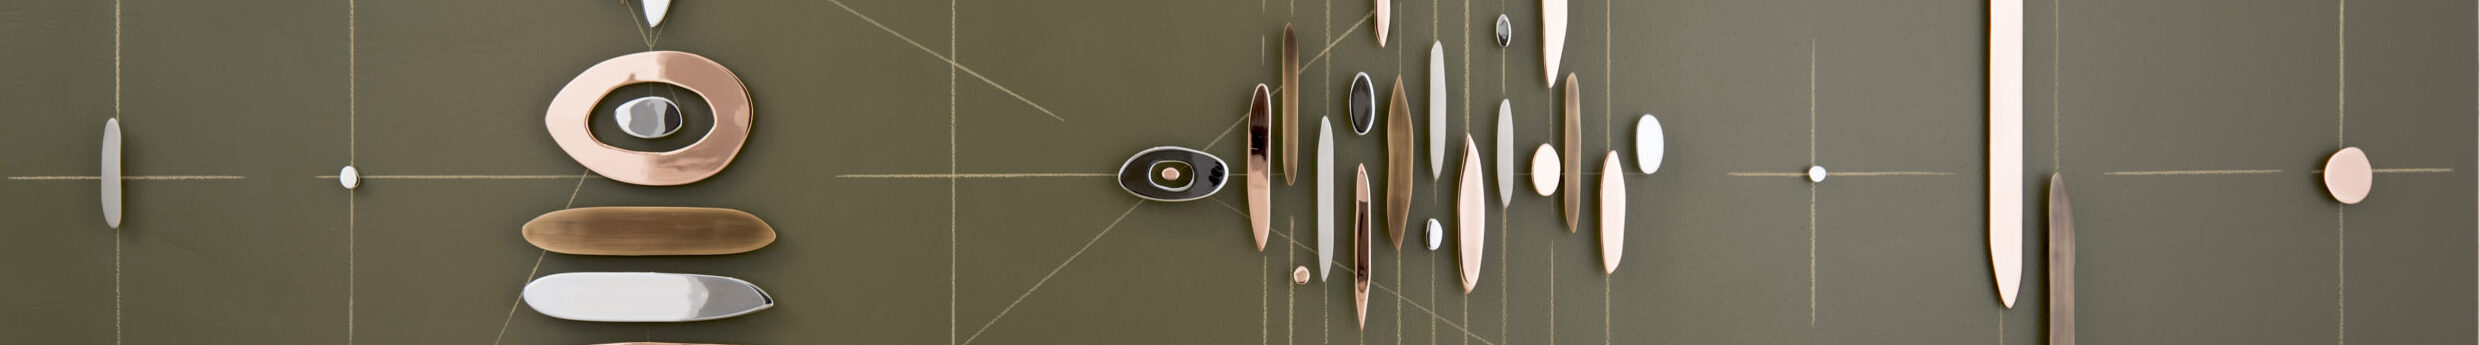 Abstract wall sculpture featuring horizontal, vertical, and diagonal intersecting lines overlaid with pieces of rounded, plated steel